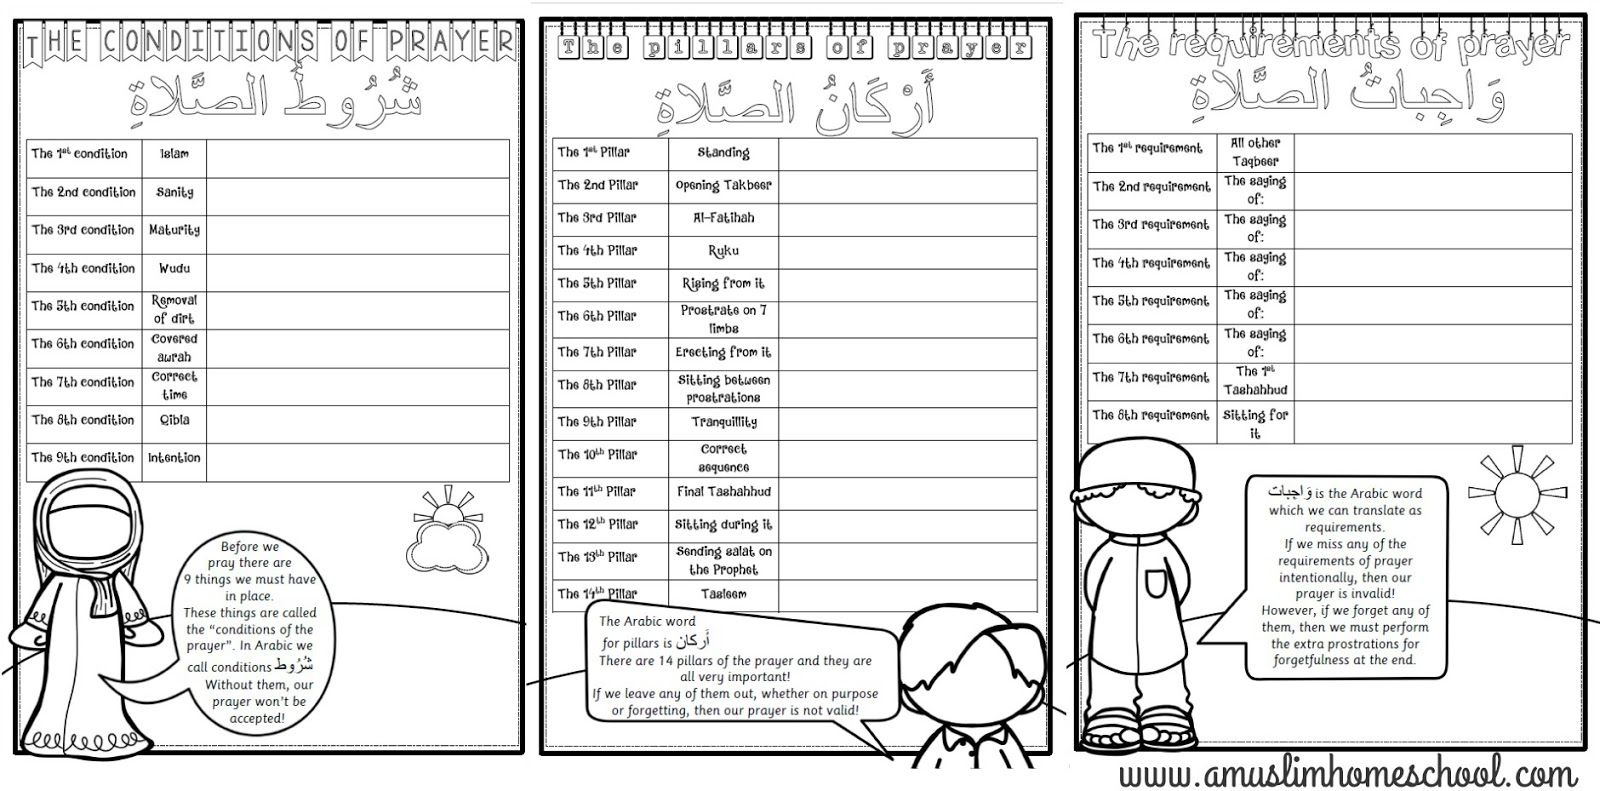 Salaah worksheet folder printable; The conditions, pillars